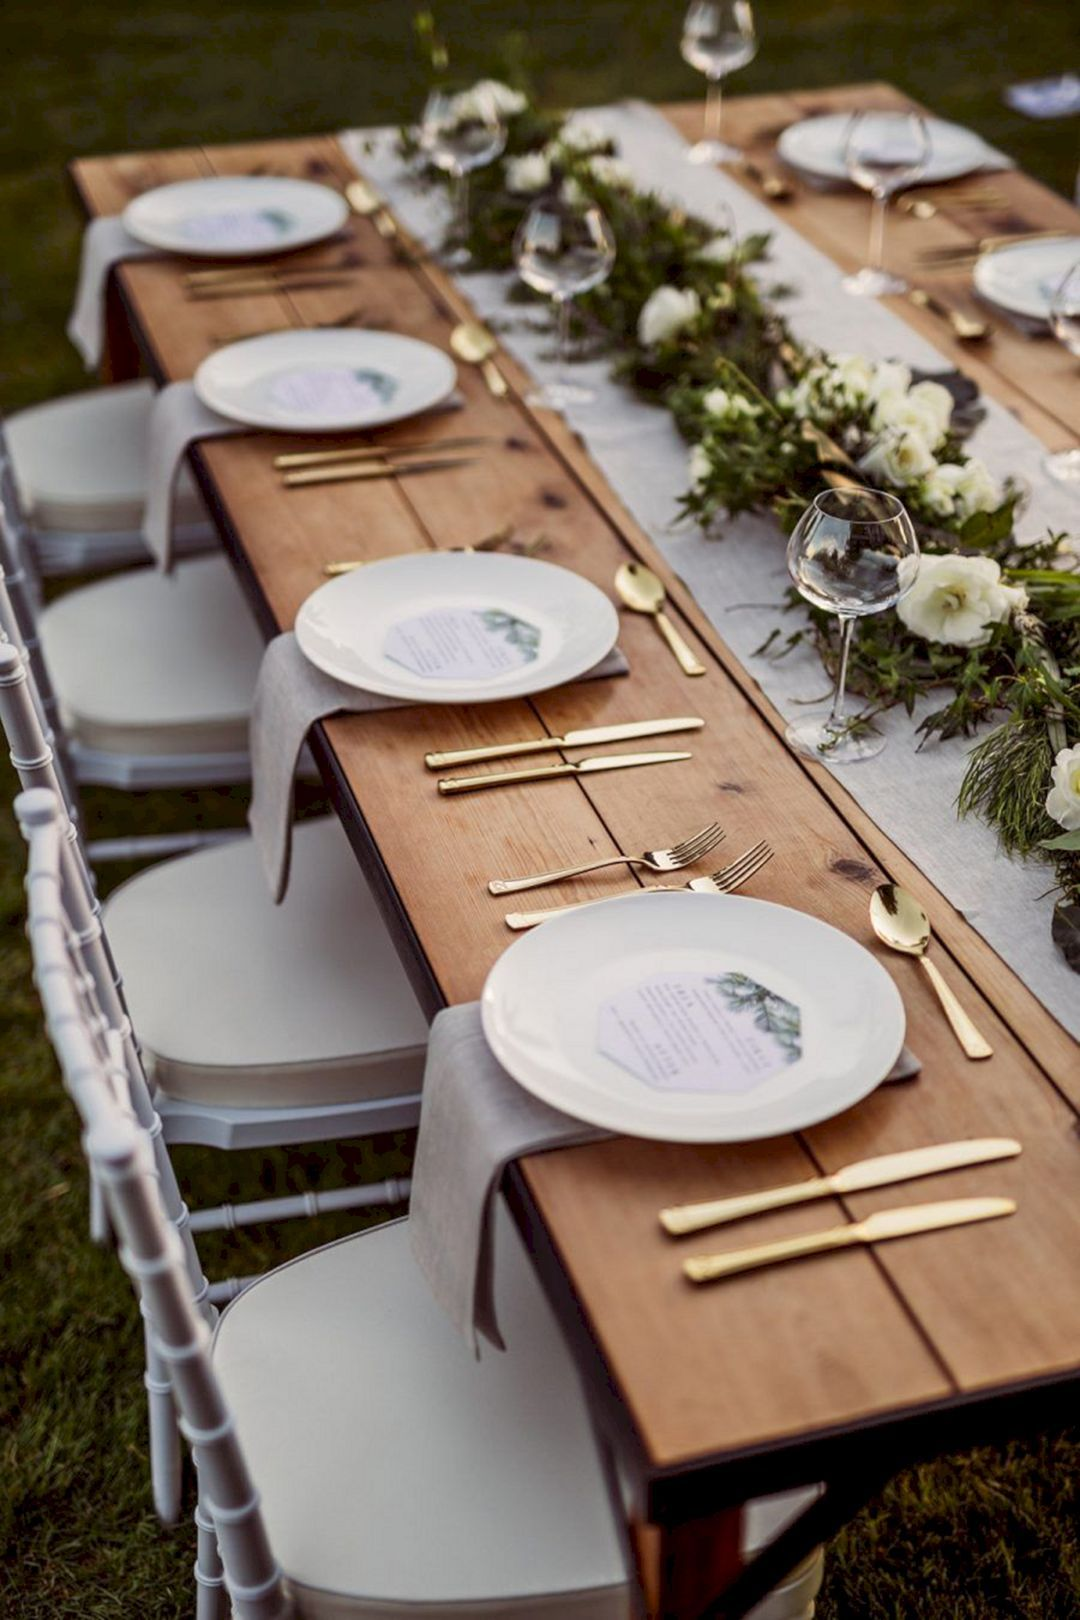 45 Modern Impressive Wedding Table Setting Ideas For Guests To Admire Your Wedding Wedding Table Settings Wedding Table Rustic Wedding Table